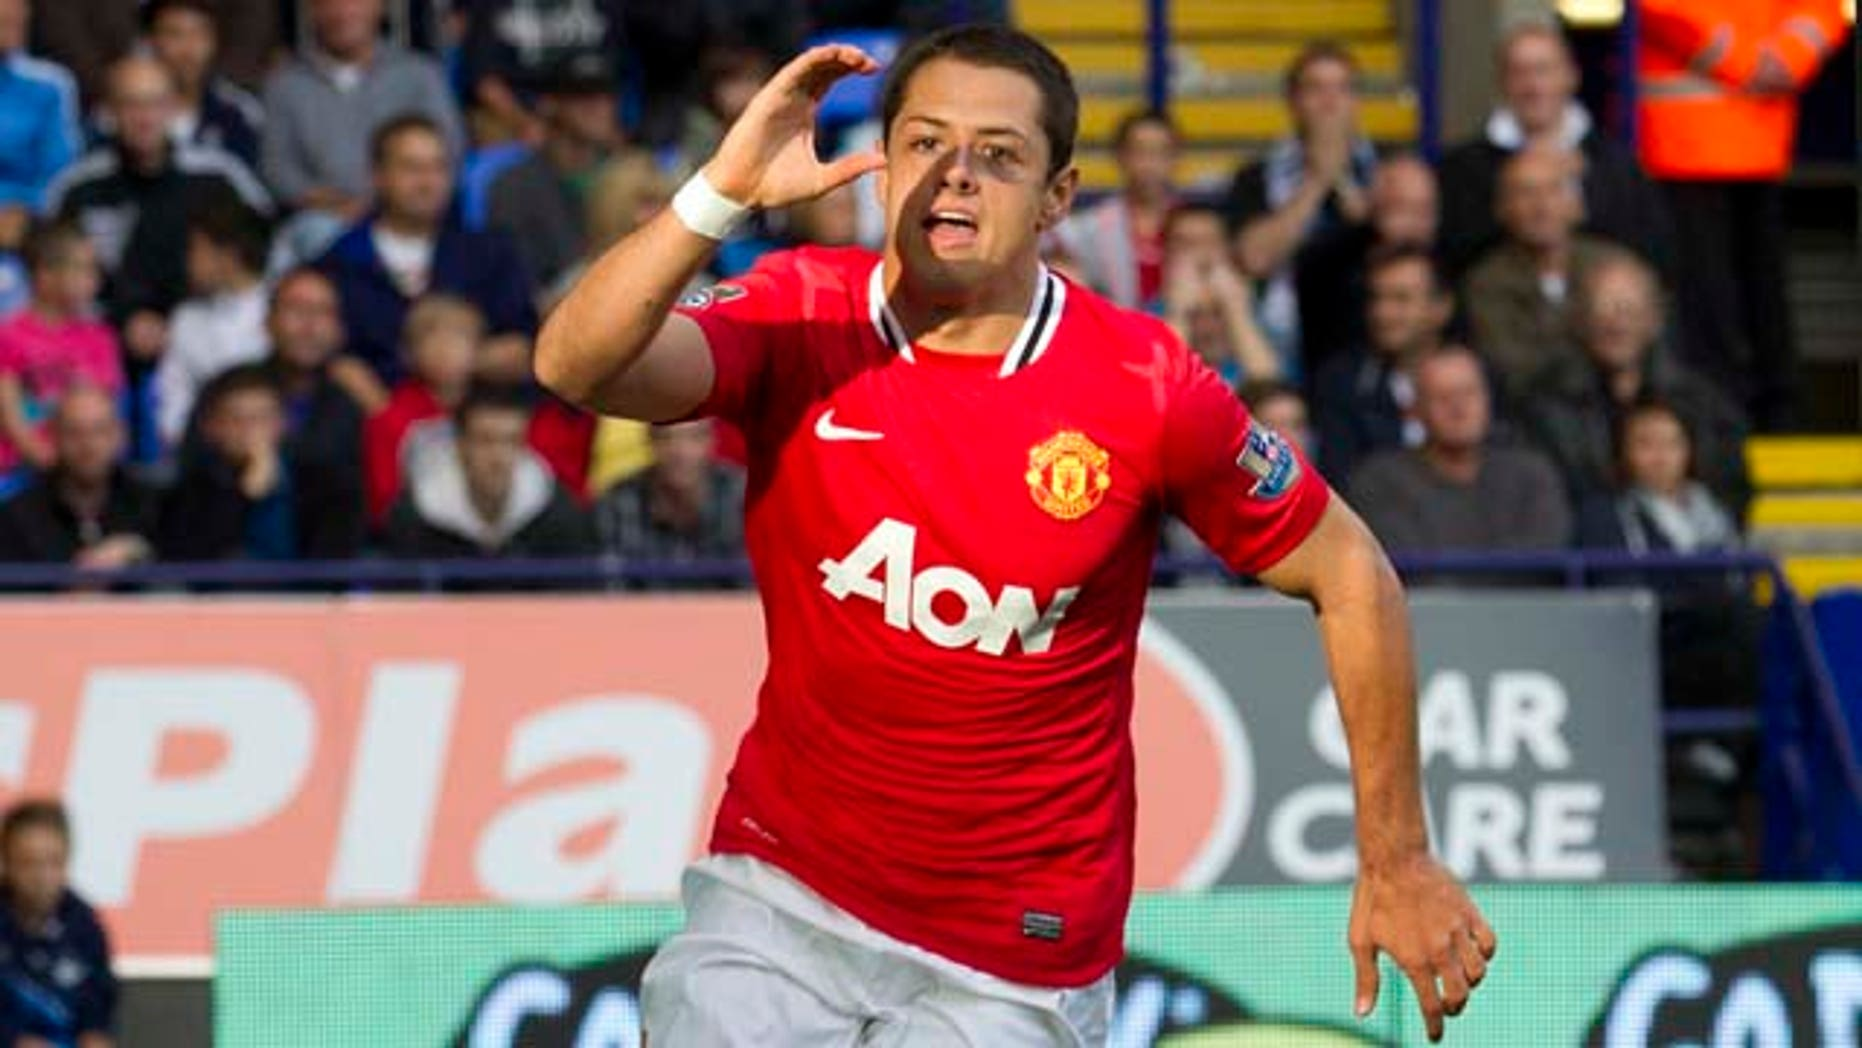 Manchester United's Javier Hernandez celebrates after scoring against Bolton during their English Premier League soccer match at The Reebok Stadium, Bolton, England, Saturday Sept. 10, 2011. (AP Photo/Jon Super)